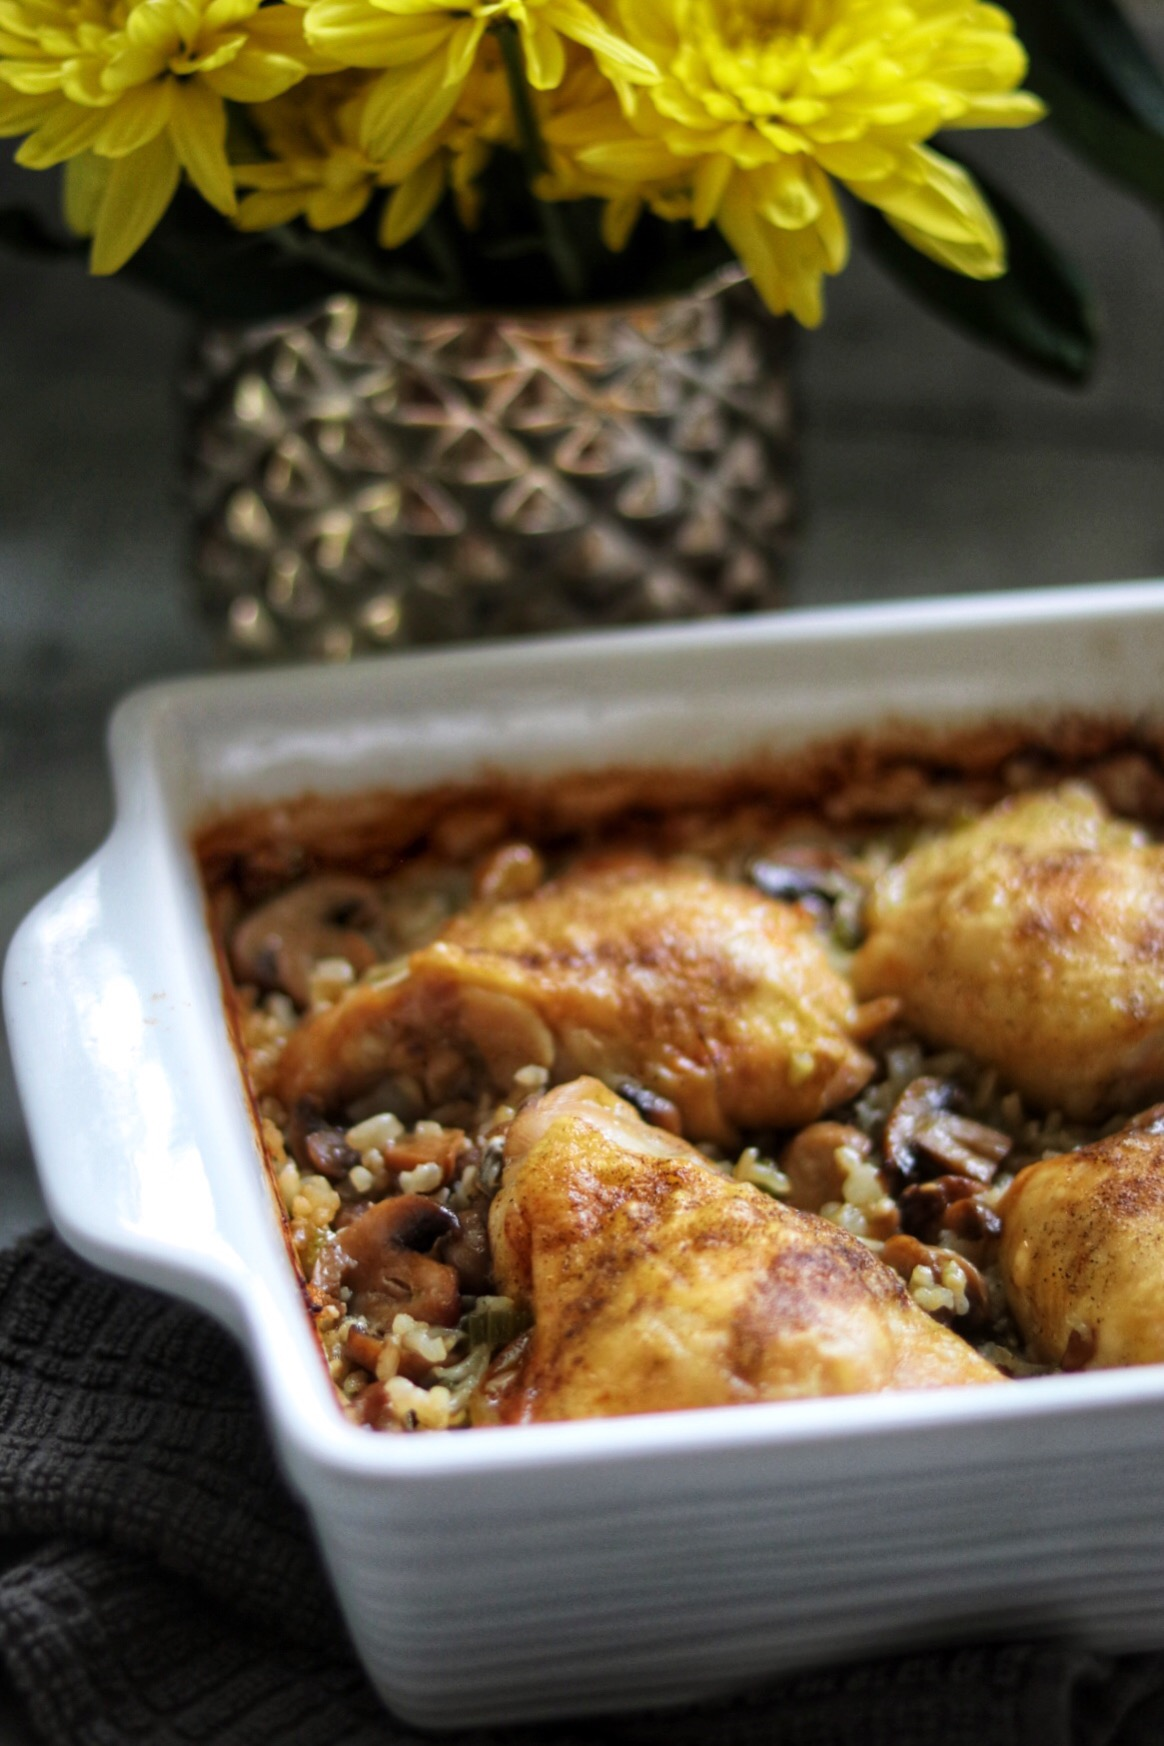 Baked Chicken Thighs With Mushroom Brown Rice trishthedish617